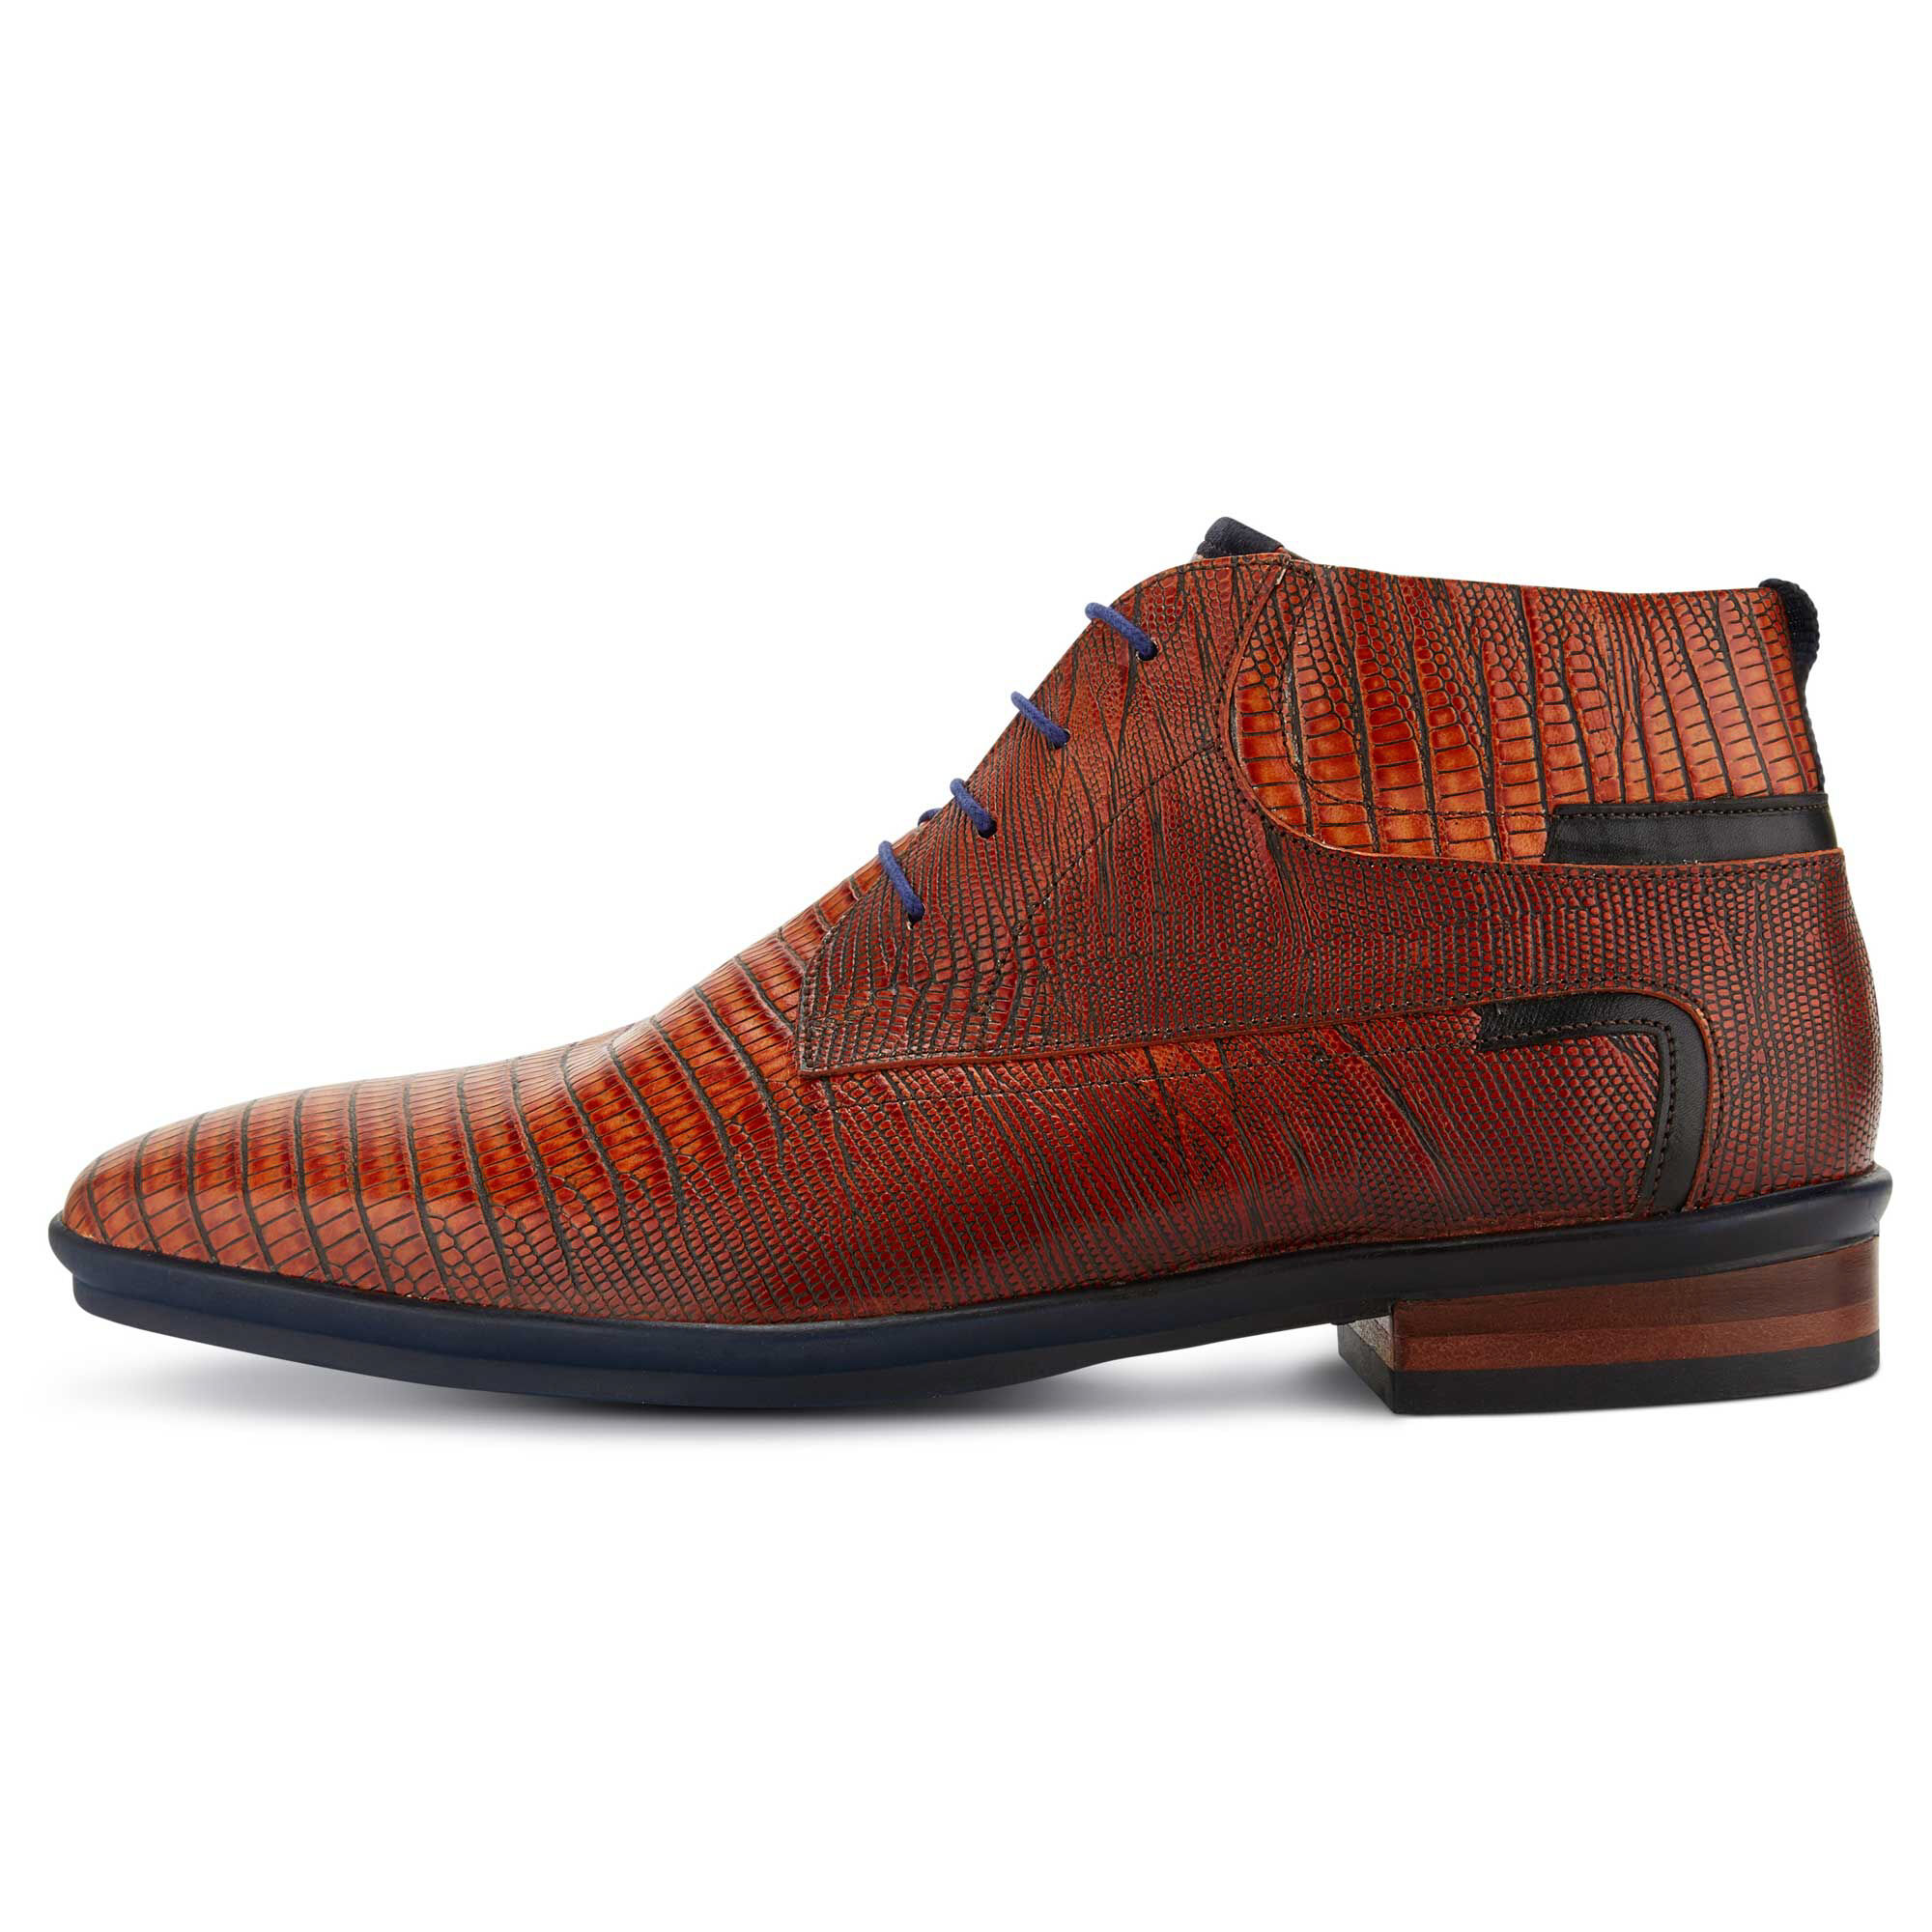 Cognac lace boot with lizard print 1087900 Floris van Bommel